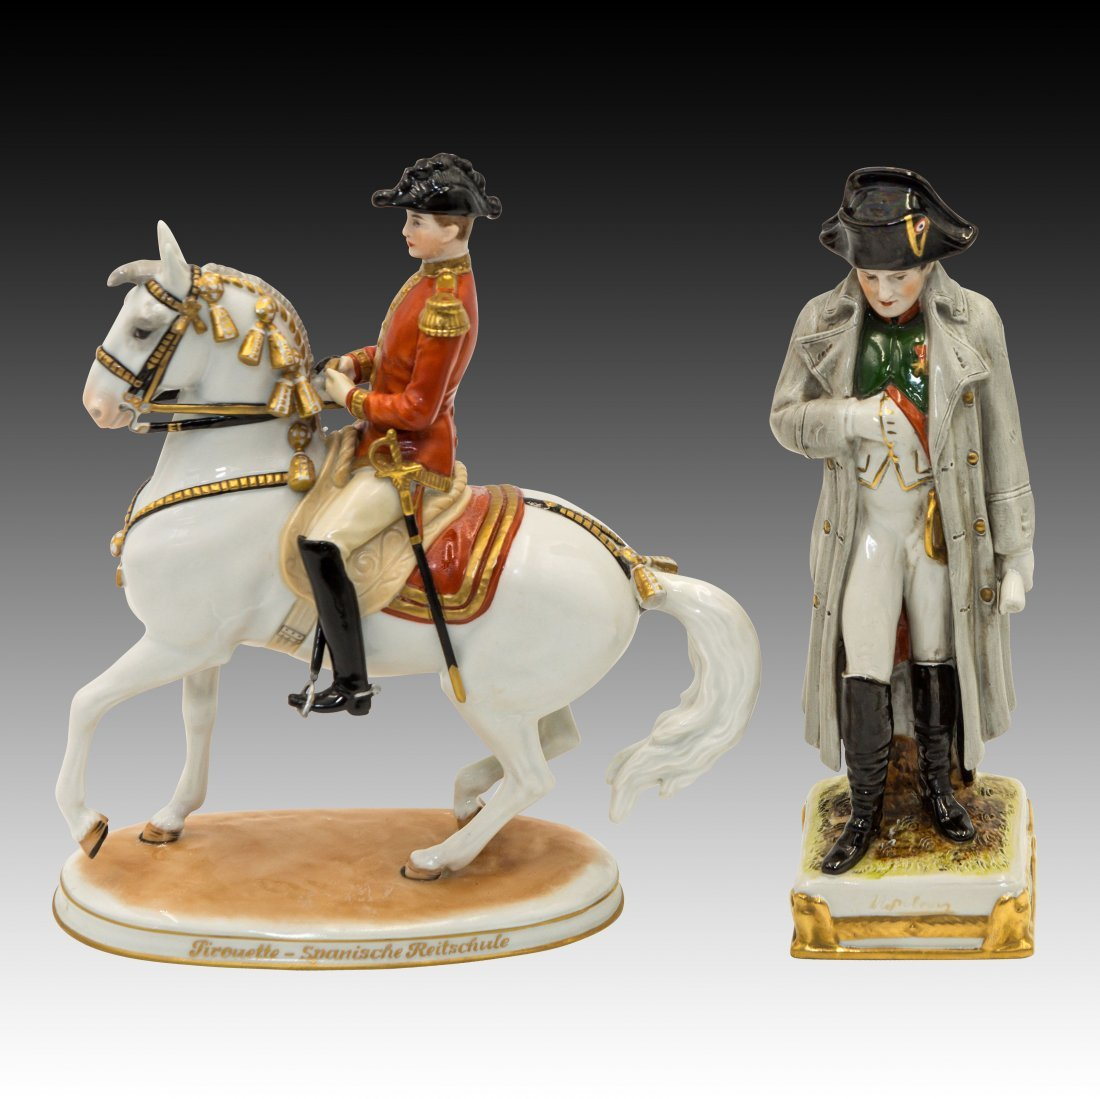 2 Figurines Napoleon and Ticouette